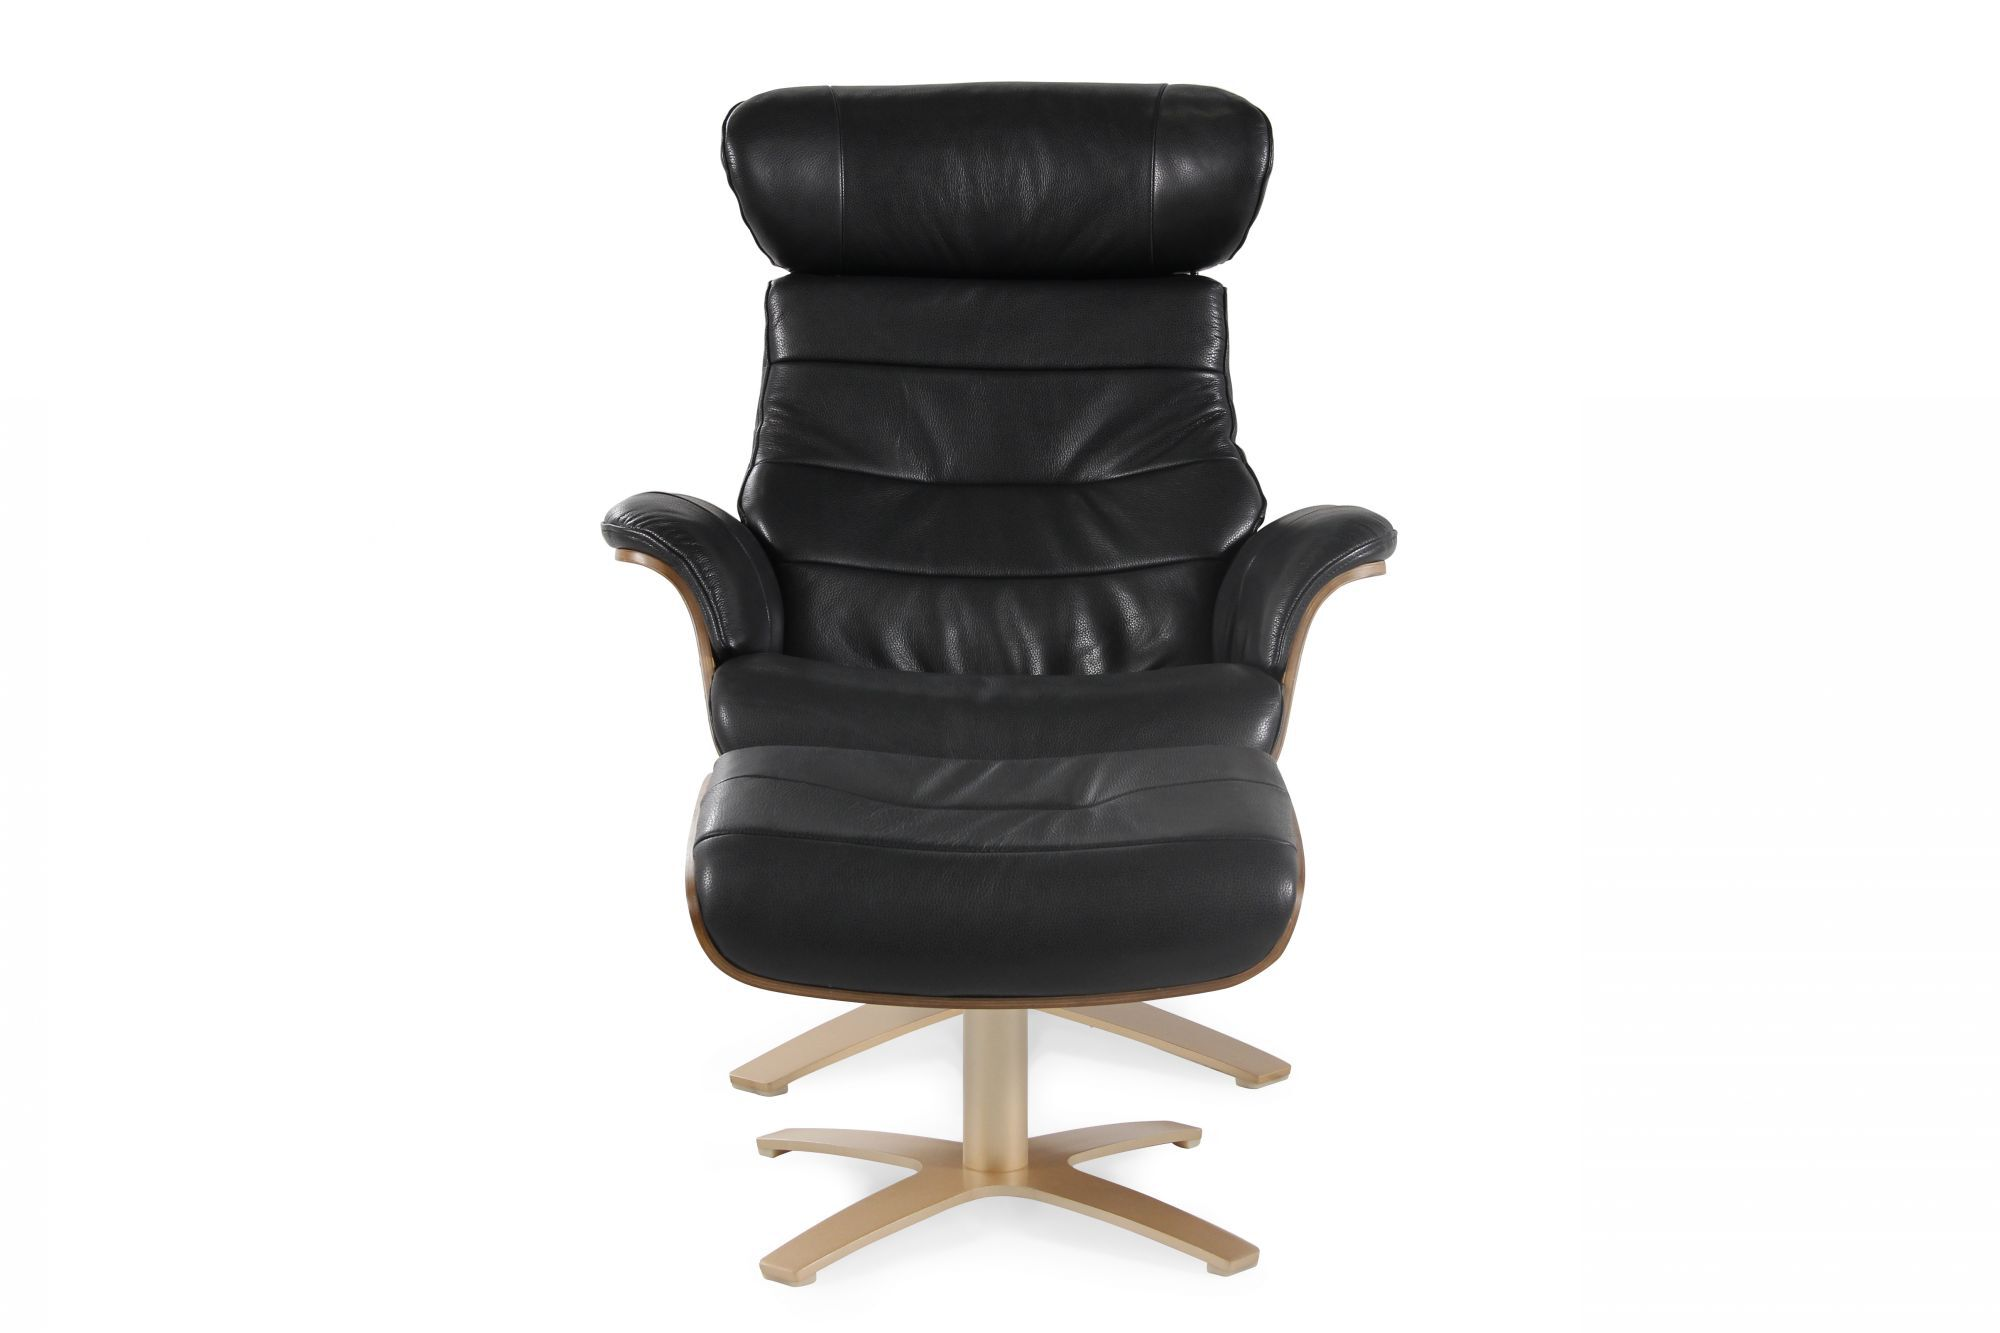 Boulevard Black Leather Swivel Recliner and Ottoman  sc 1 st  Mathis Brothers & Boulevard Black Leather Swivel Recliner and Ottoman | Mathis ... islam-shia.org